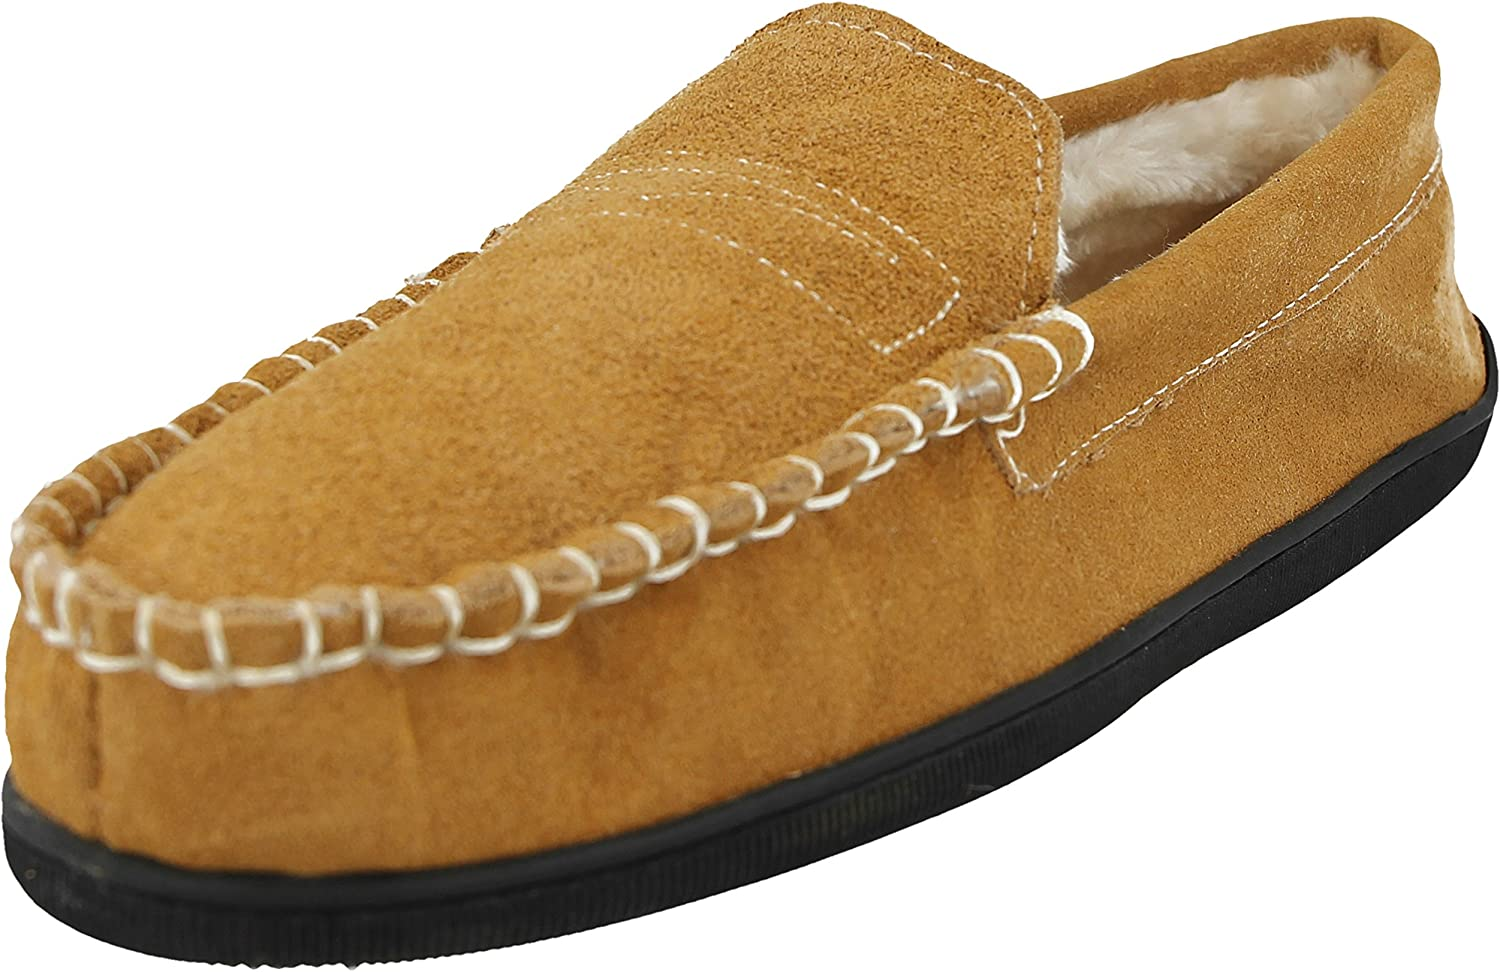 MENS DR KELLER WARM CASUAL SLIPPERS SHOES SLIP ON DRIVING WALKING WINTER SIZE